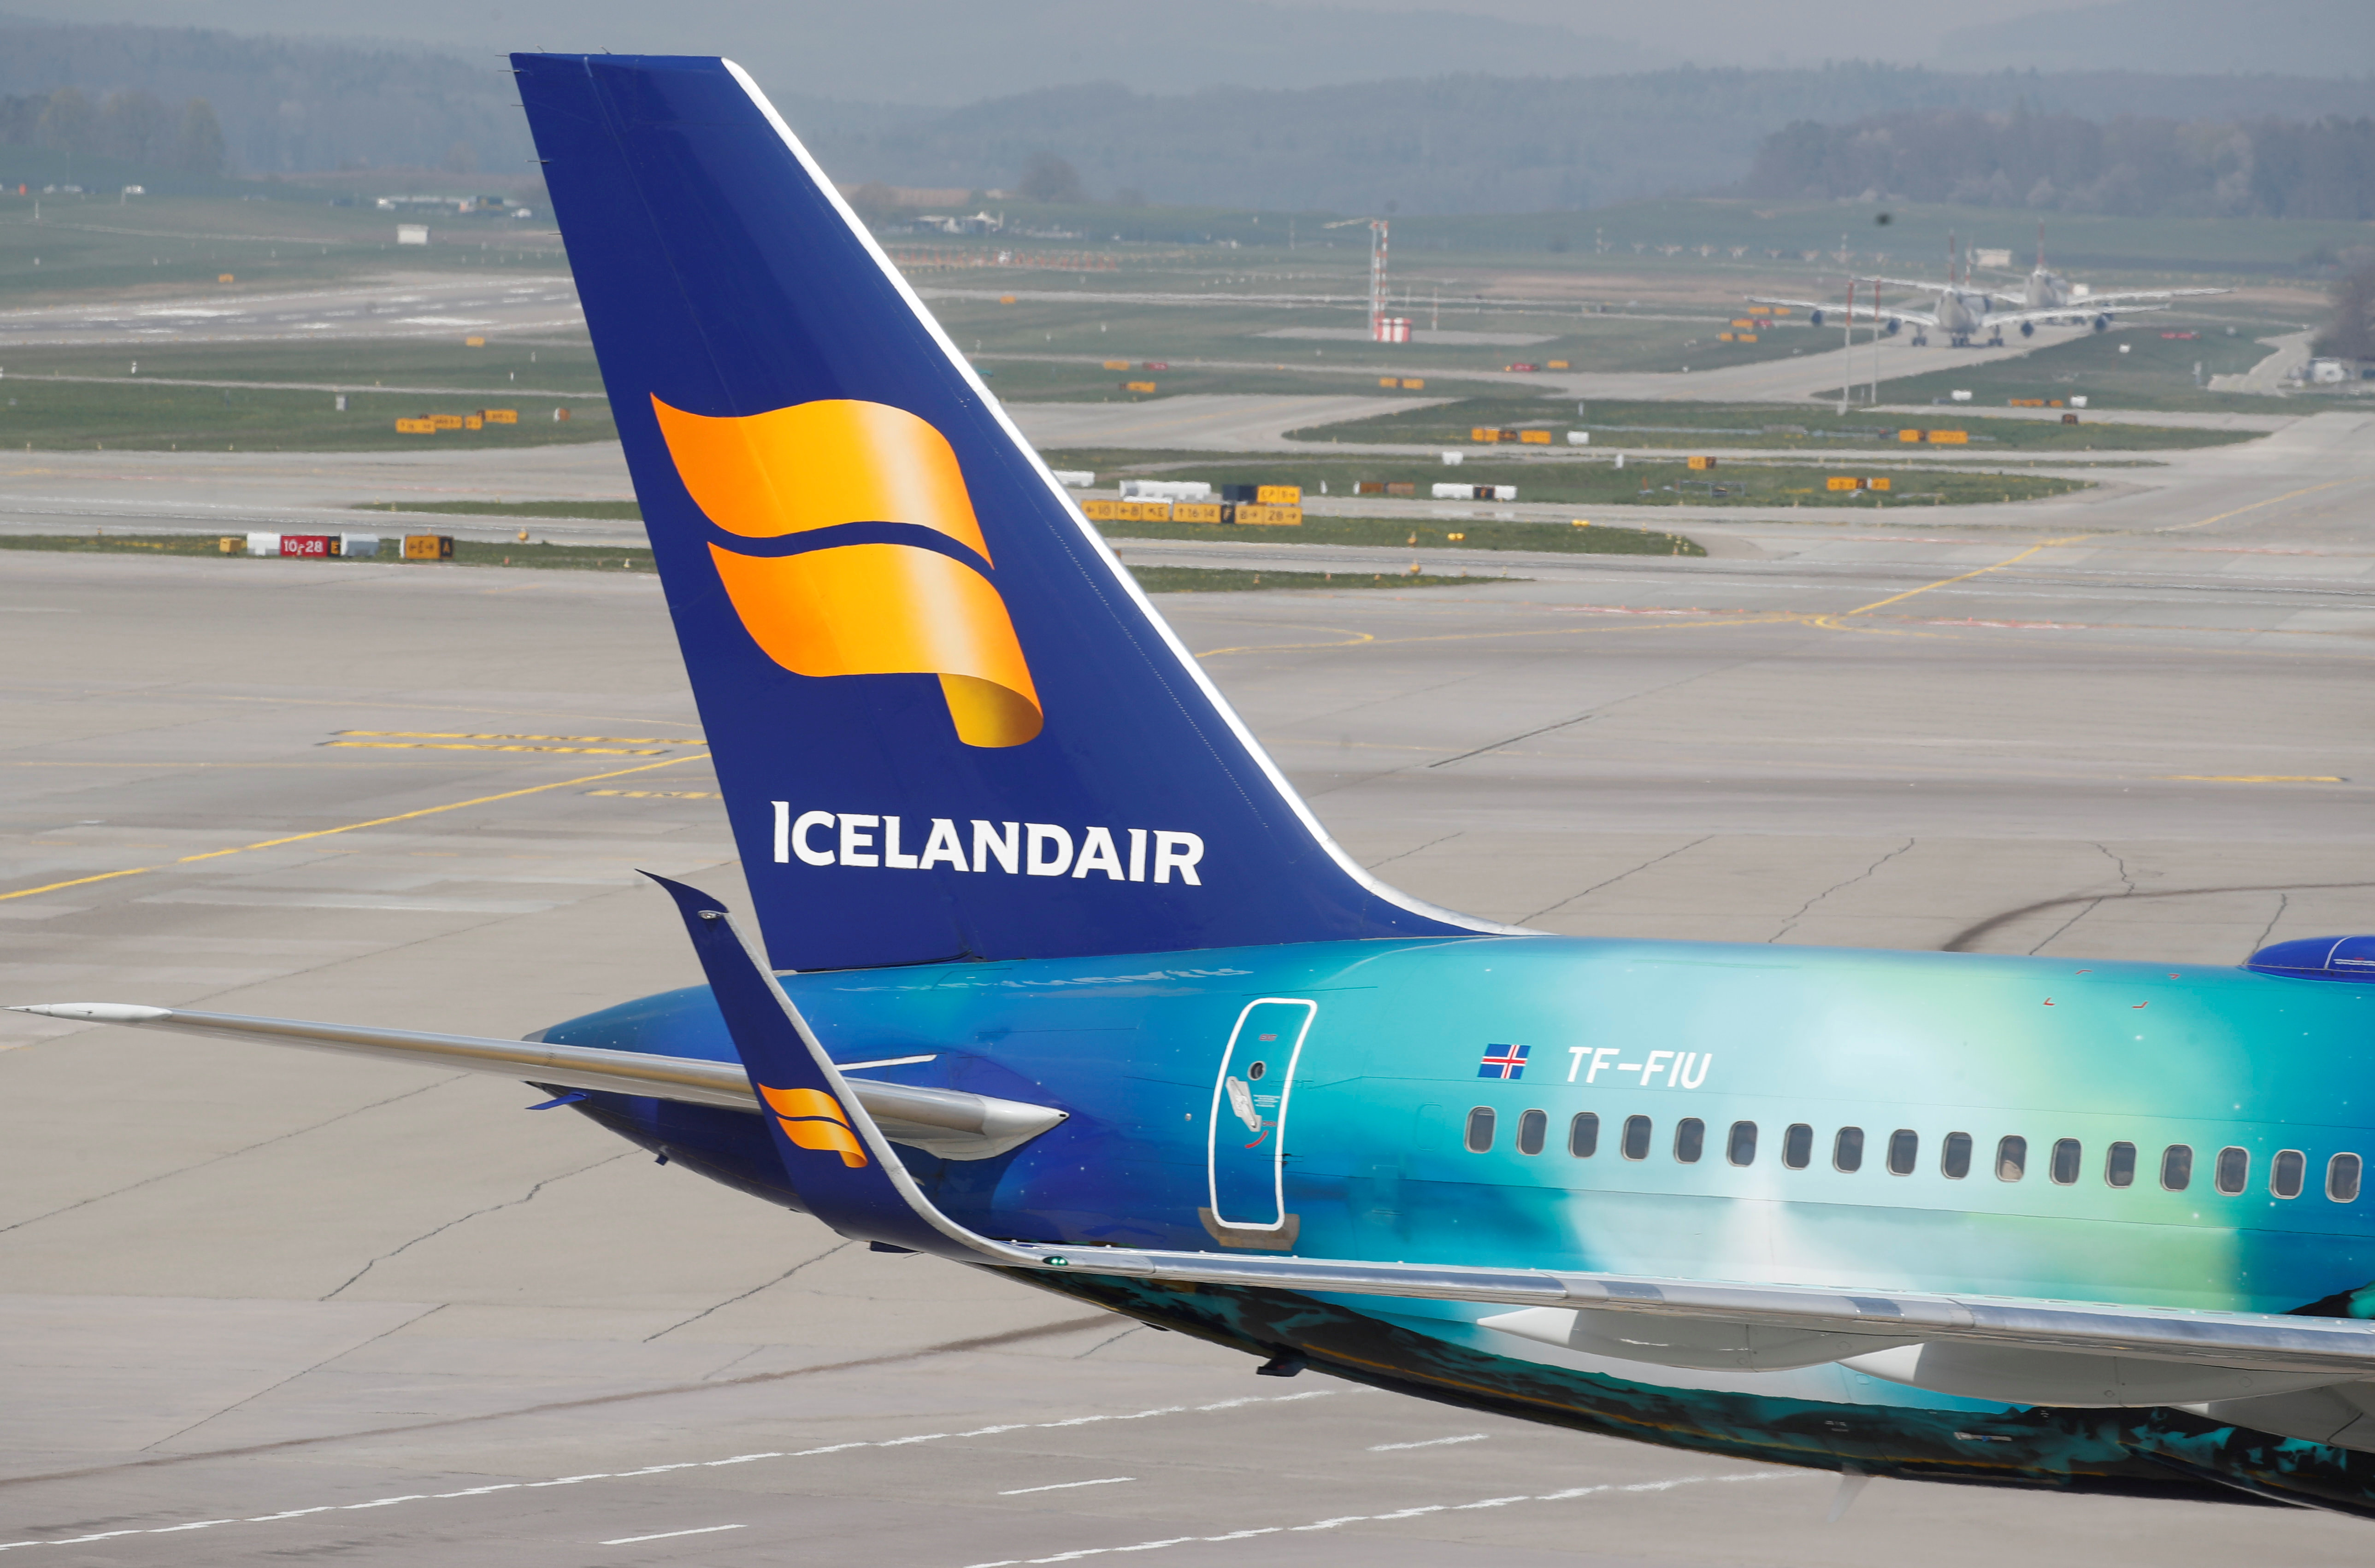 The logo of Icelandair airlines is seen at the tail fin of a Boeing 757-256 aircraft at Zurich airport, Switzerland April 16, 2019. REUTERS/Arnd Wiegmann/File Photo